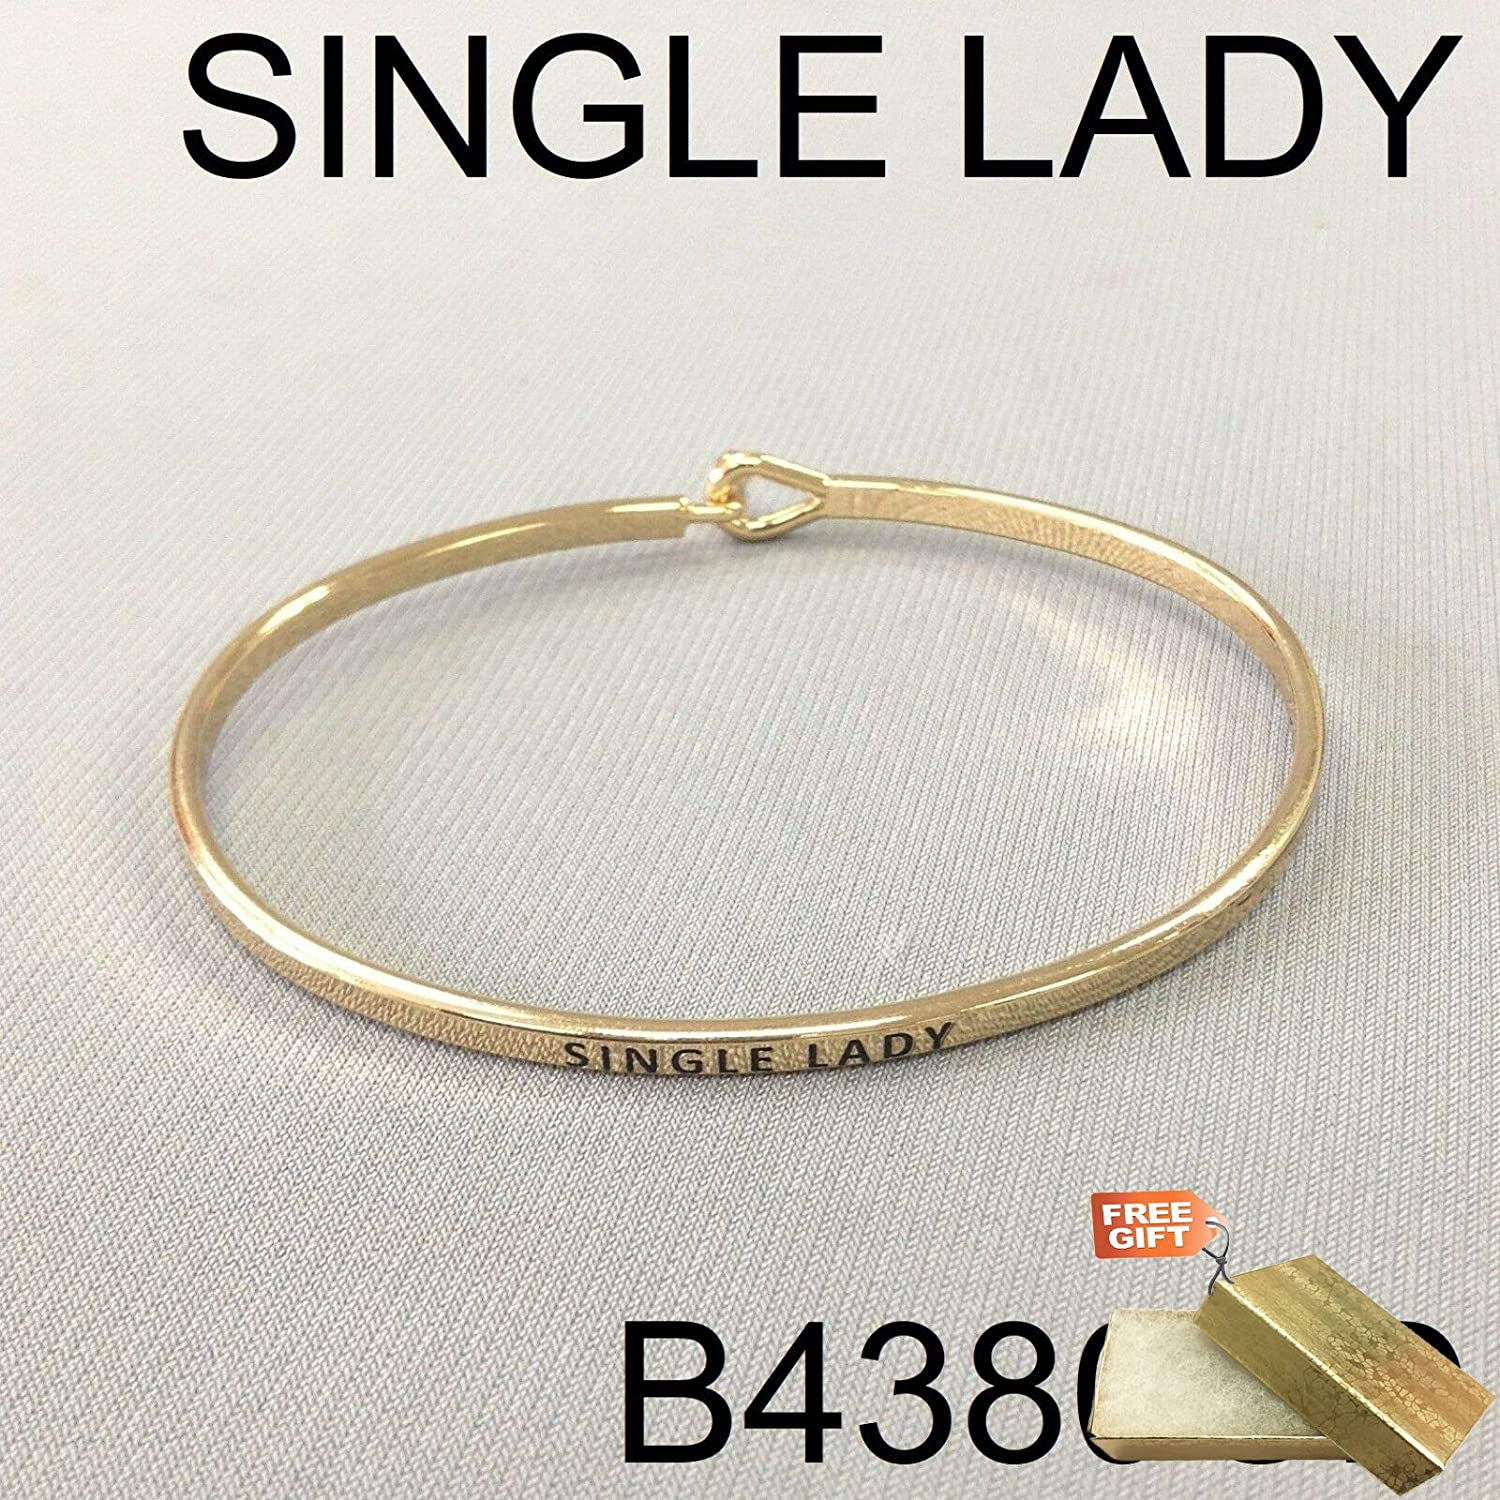 Gold Finish Single Lady Phrase Message Engraved Brass Simple Bangle Fashion Jewelry Bracelet For Women Gold Cotton Filled Gift Box for Free